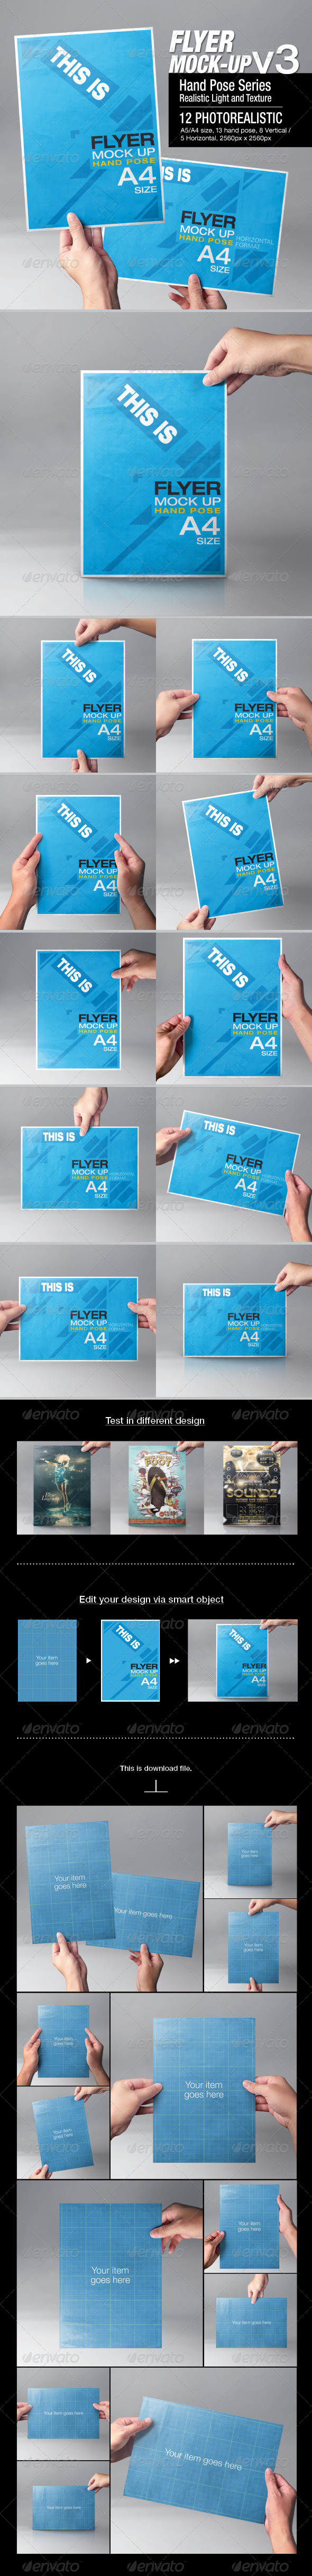 GraphicRiver Flyer Mock-Up v3 6658980